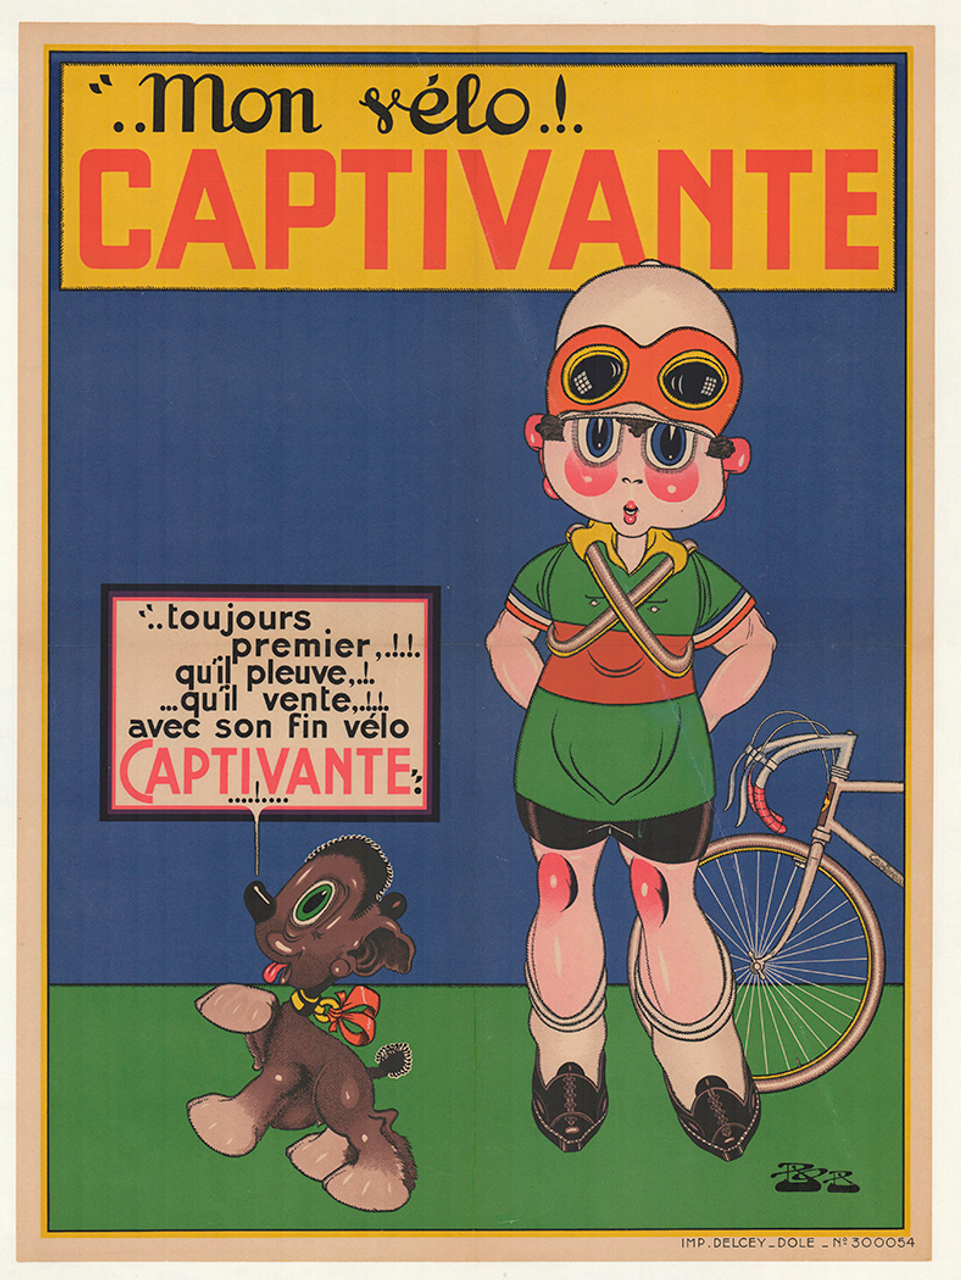 Captivante Original Vintage Bicycle Poster by BOB